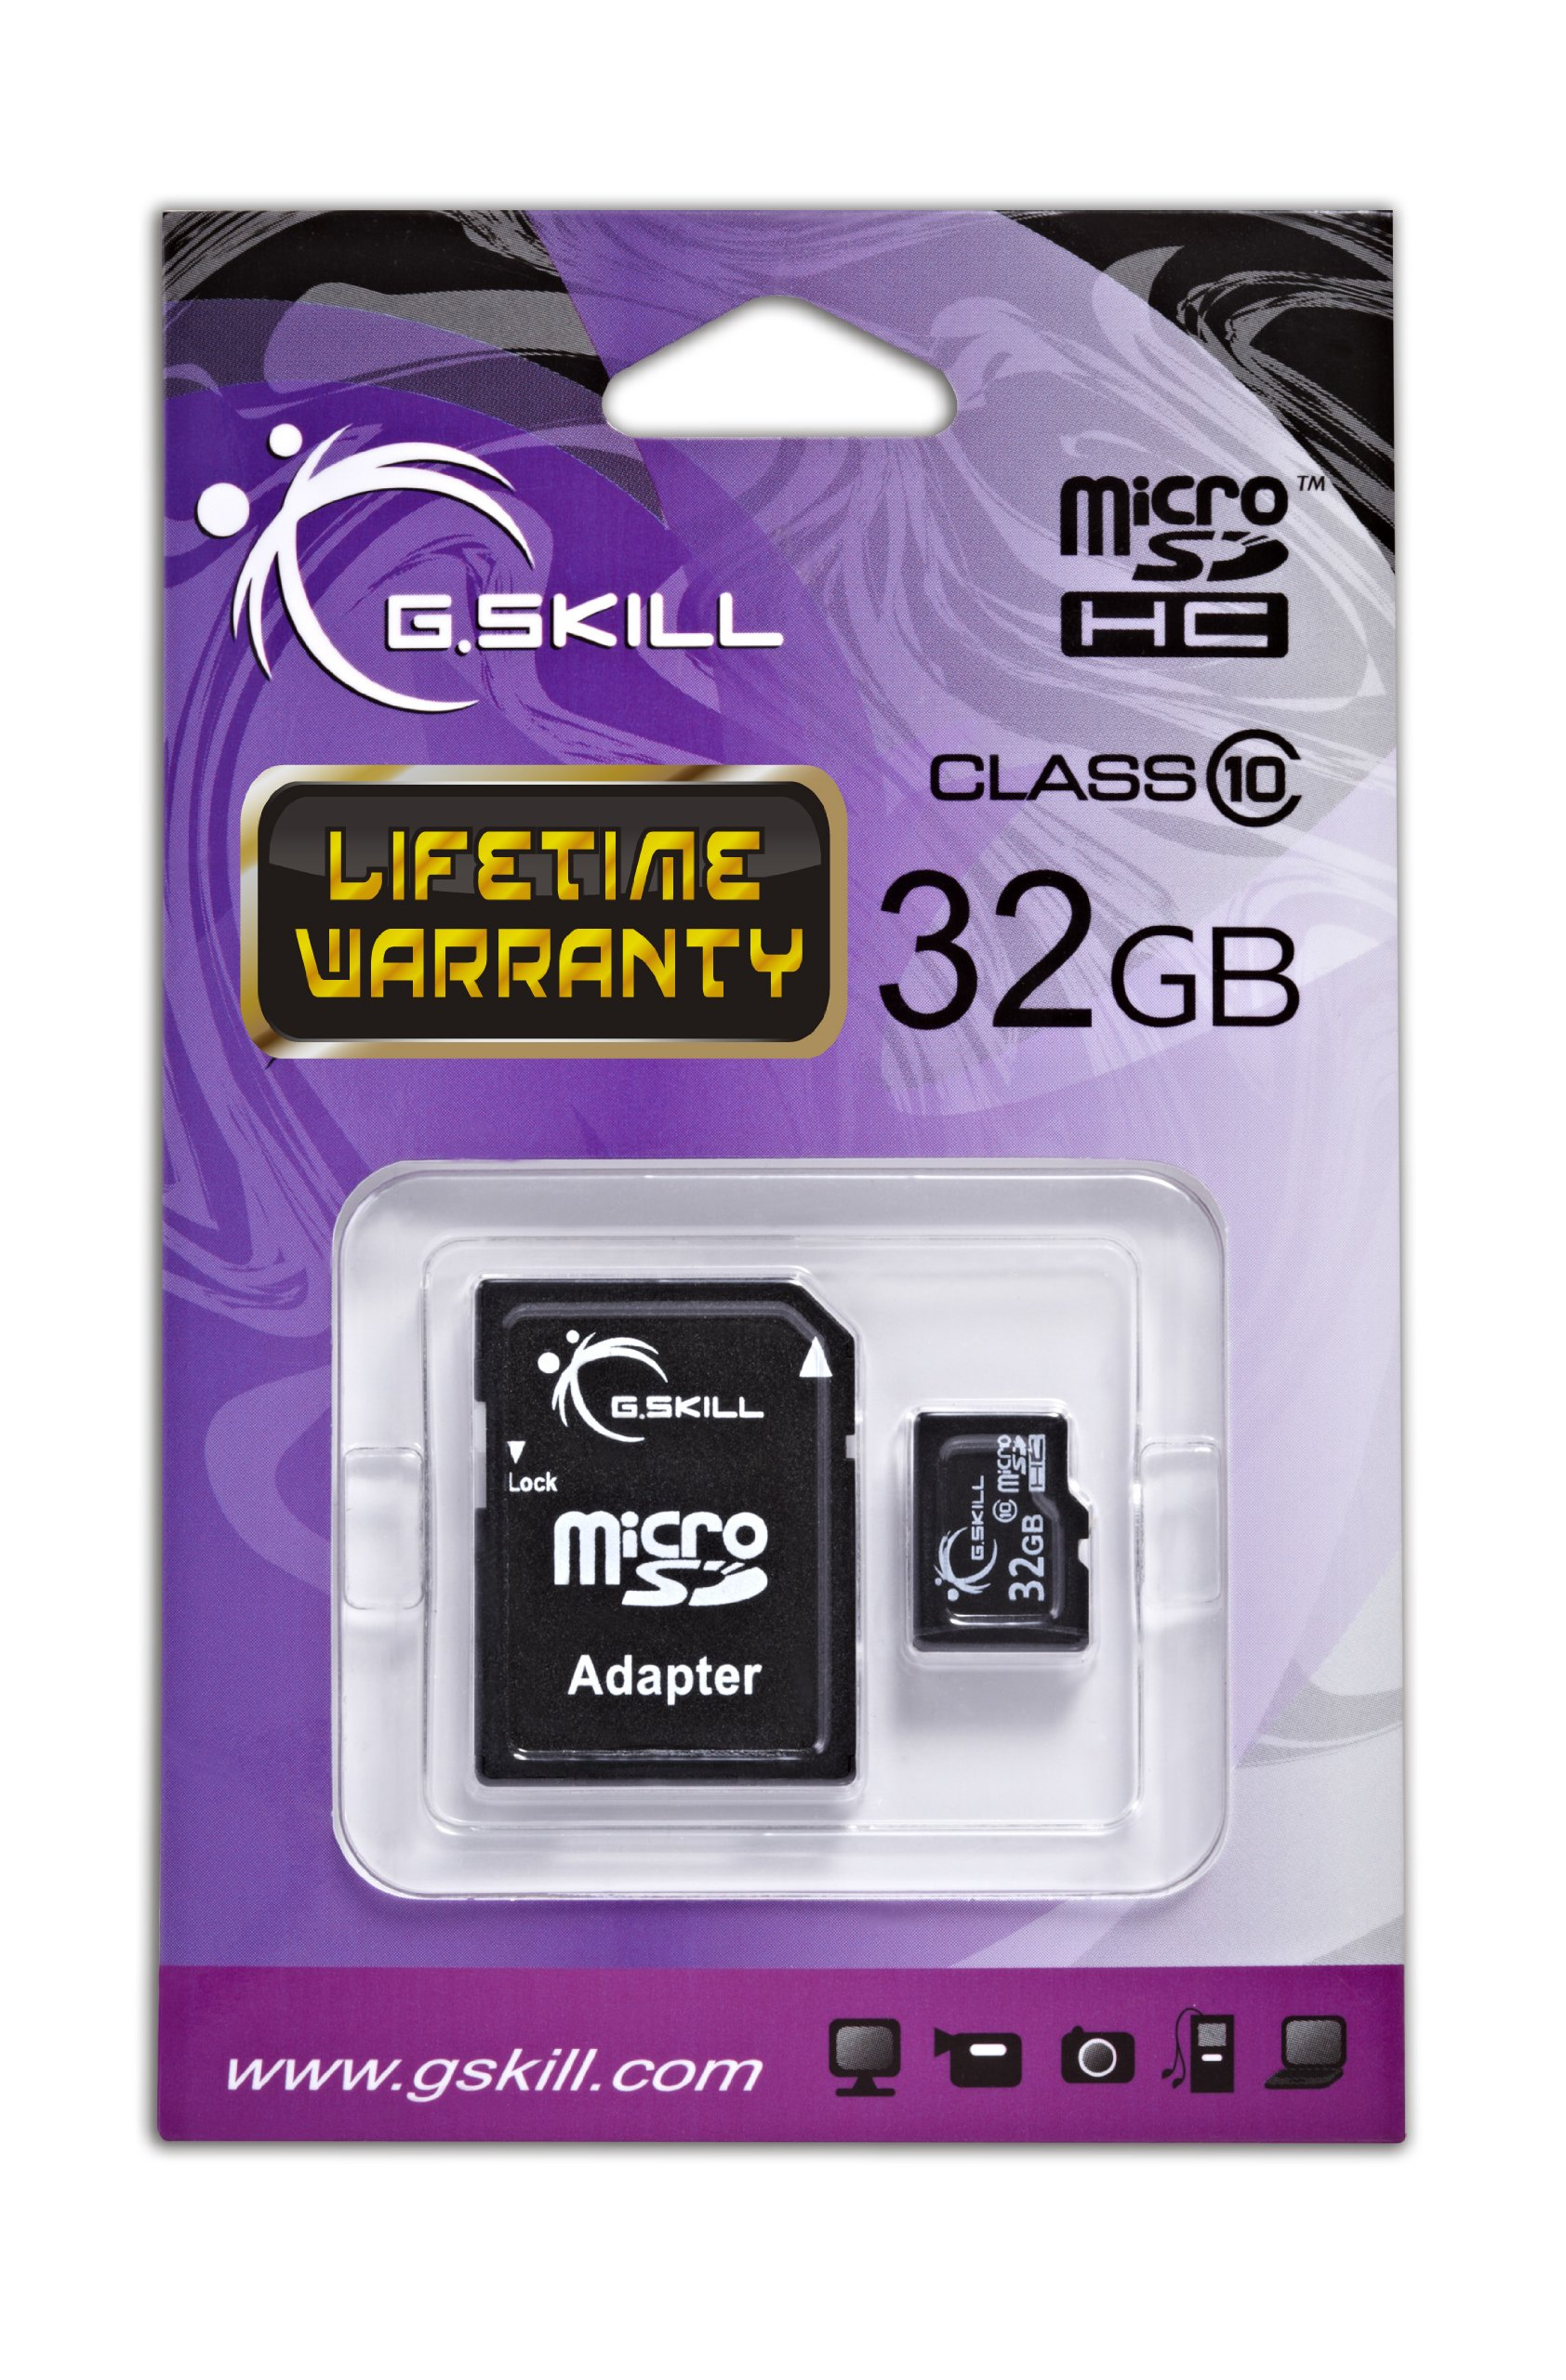 G. Skill class 6 microsdhc flash card with sd adapter (ff-tsdg32ga-c6) 2 ultra small storage for mobile phones, digital cameras, digital music players, gps, automotive recorders and camcorders sd adapter included only 10% the size of a standard sd card